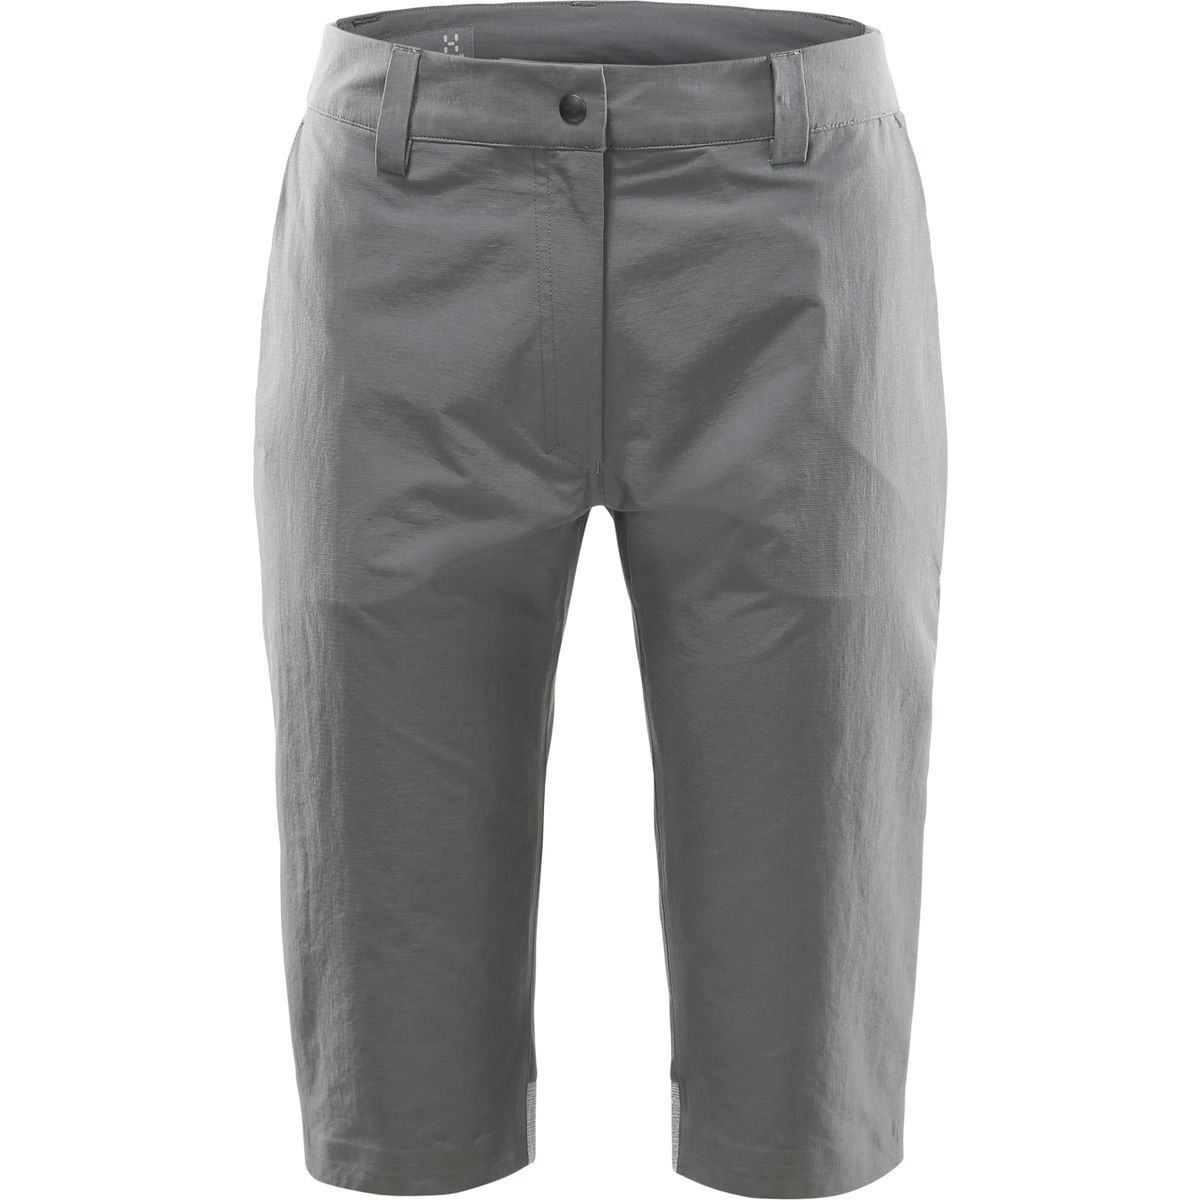 Haglofs Amfibious Long Short - Women's